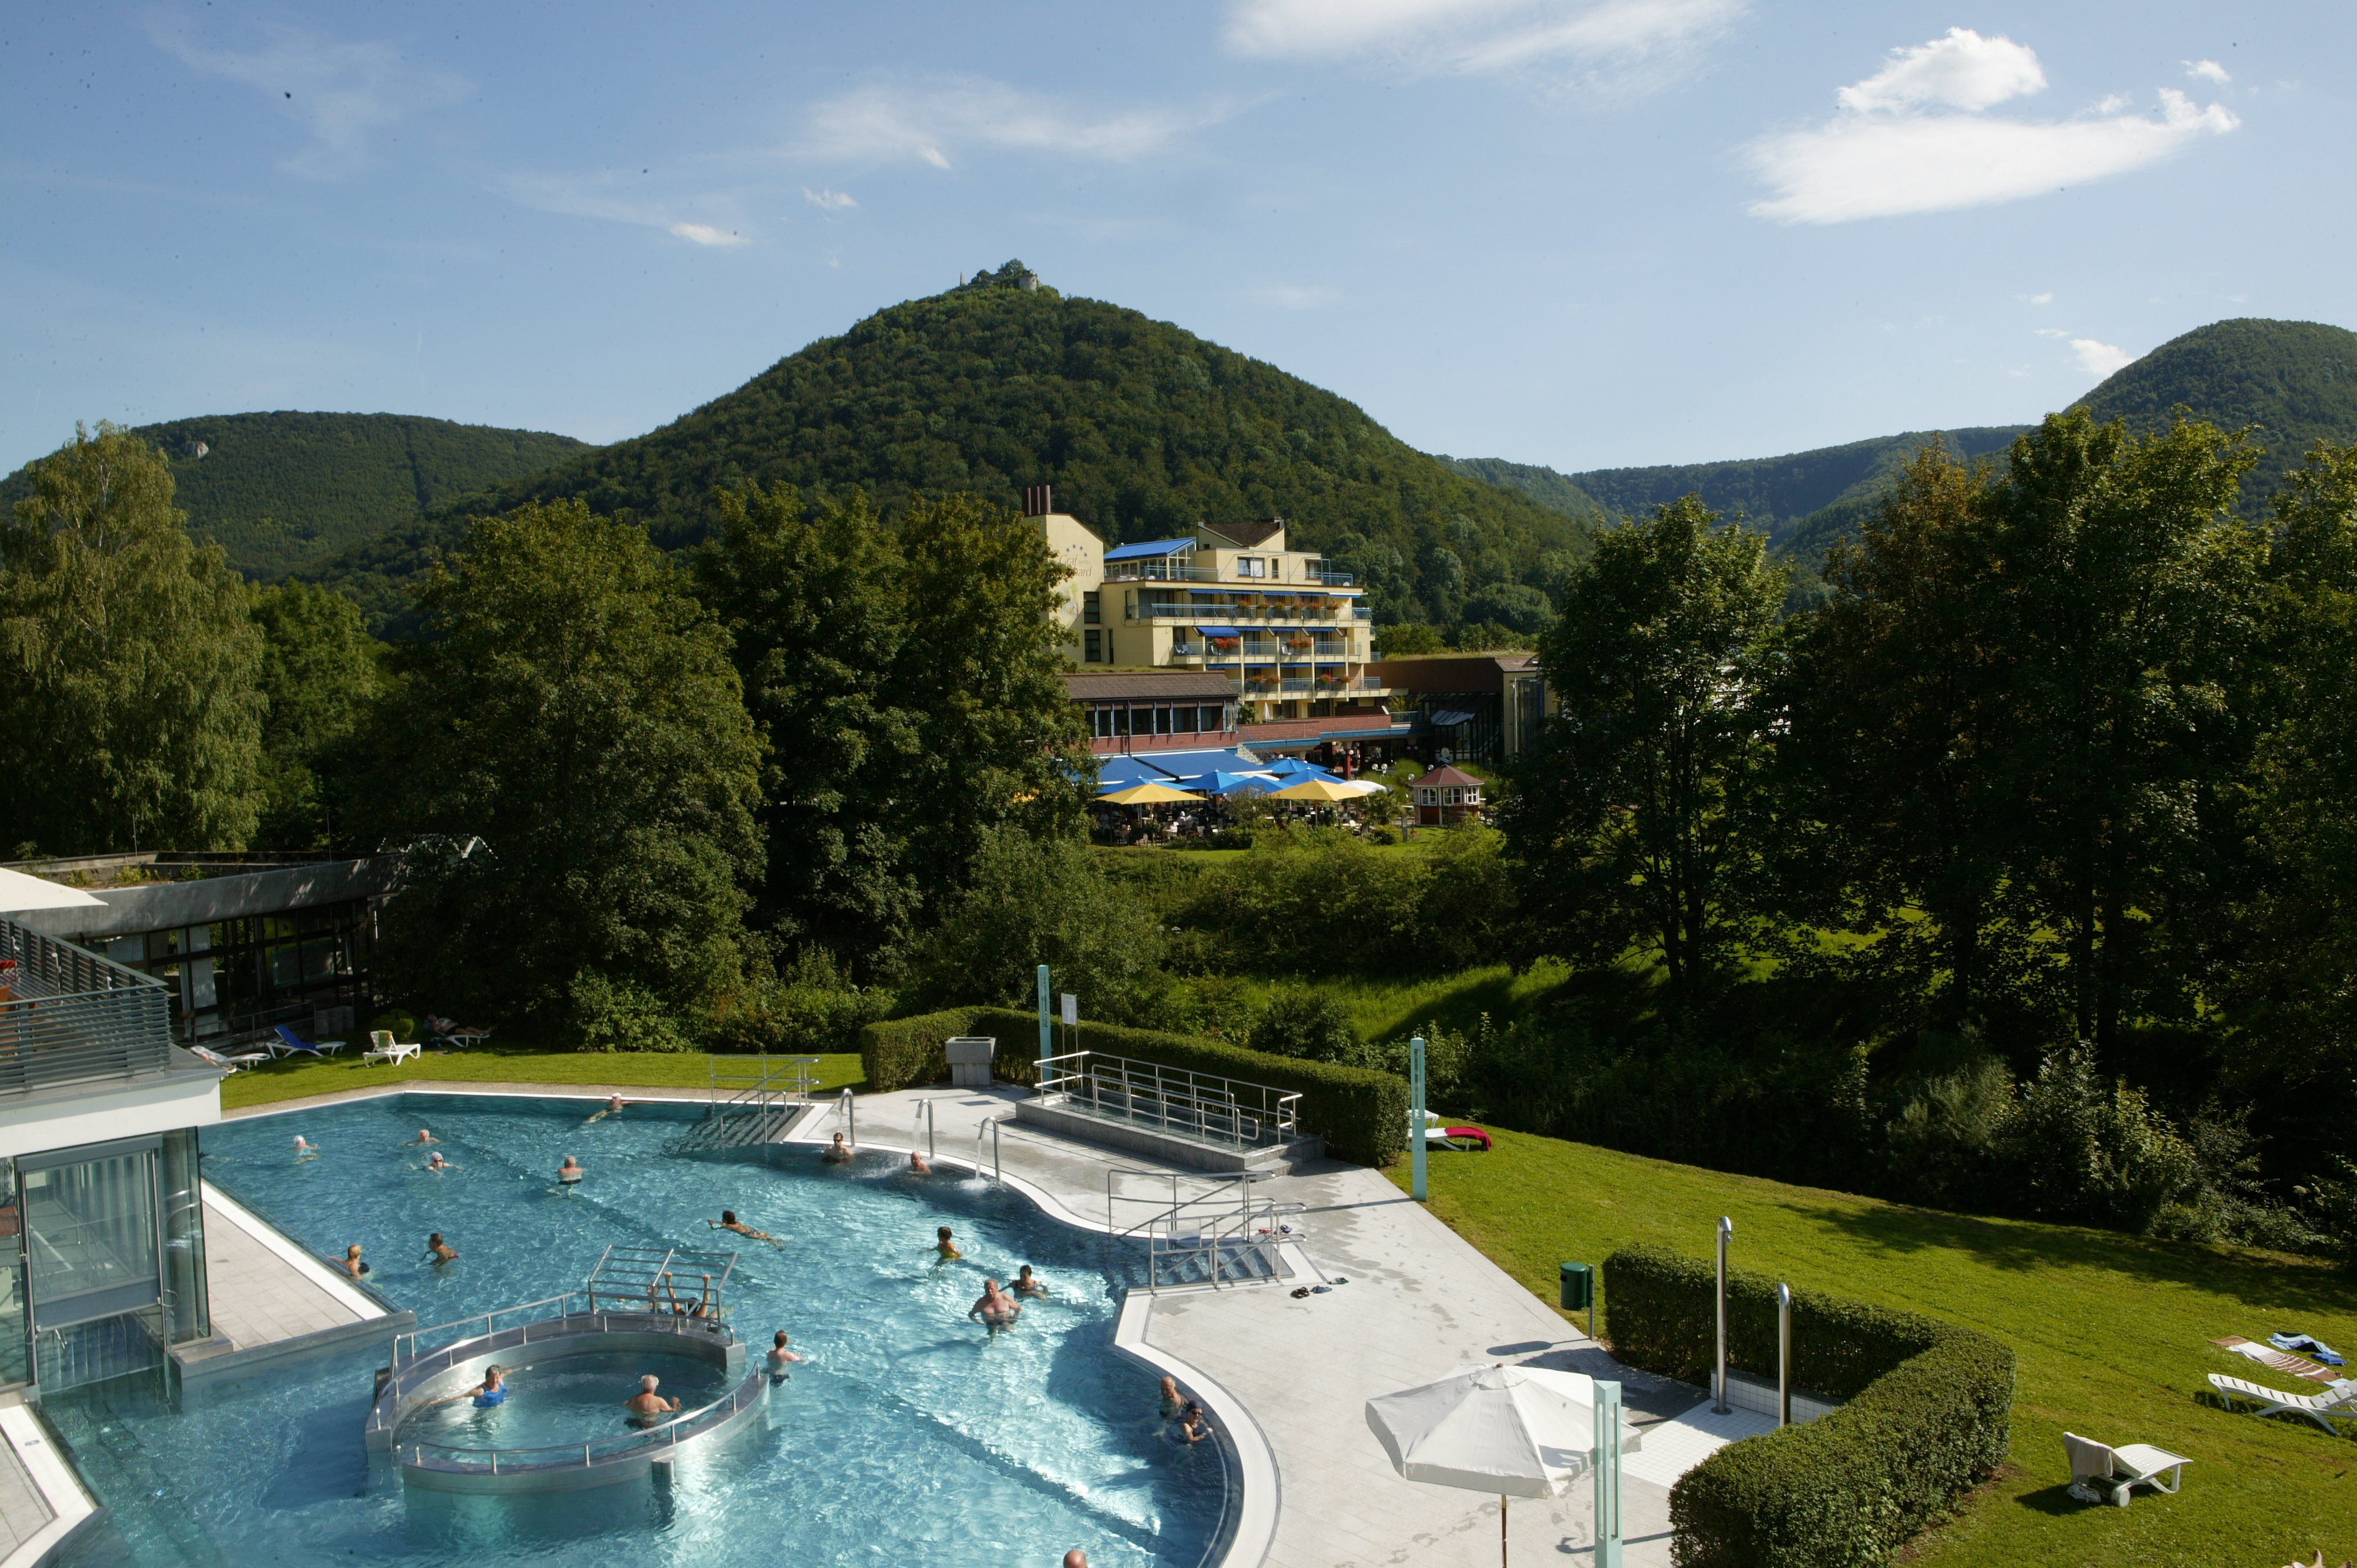 Hotels In Bad Urach Visit This German Spa Town With Hrs